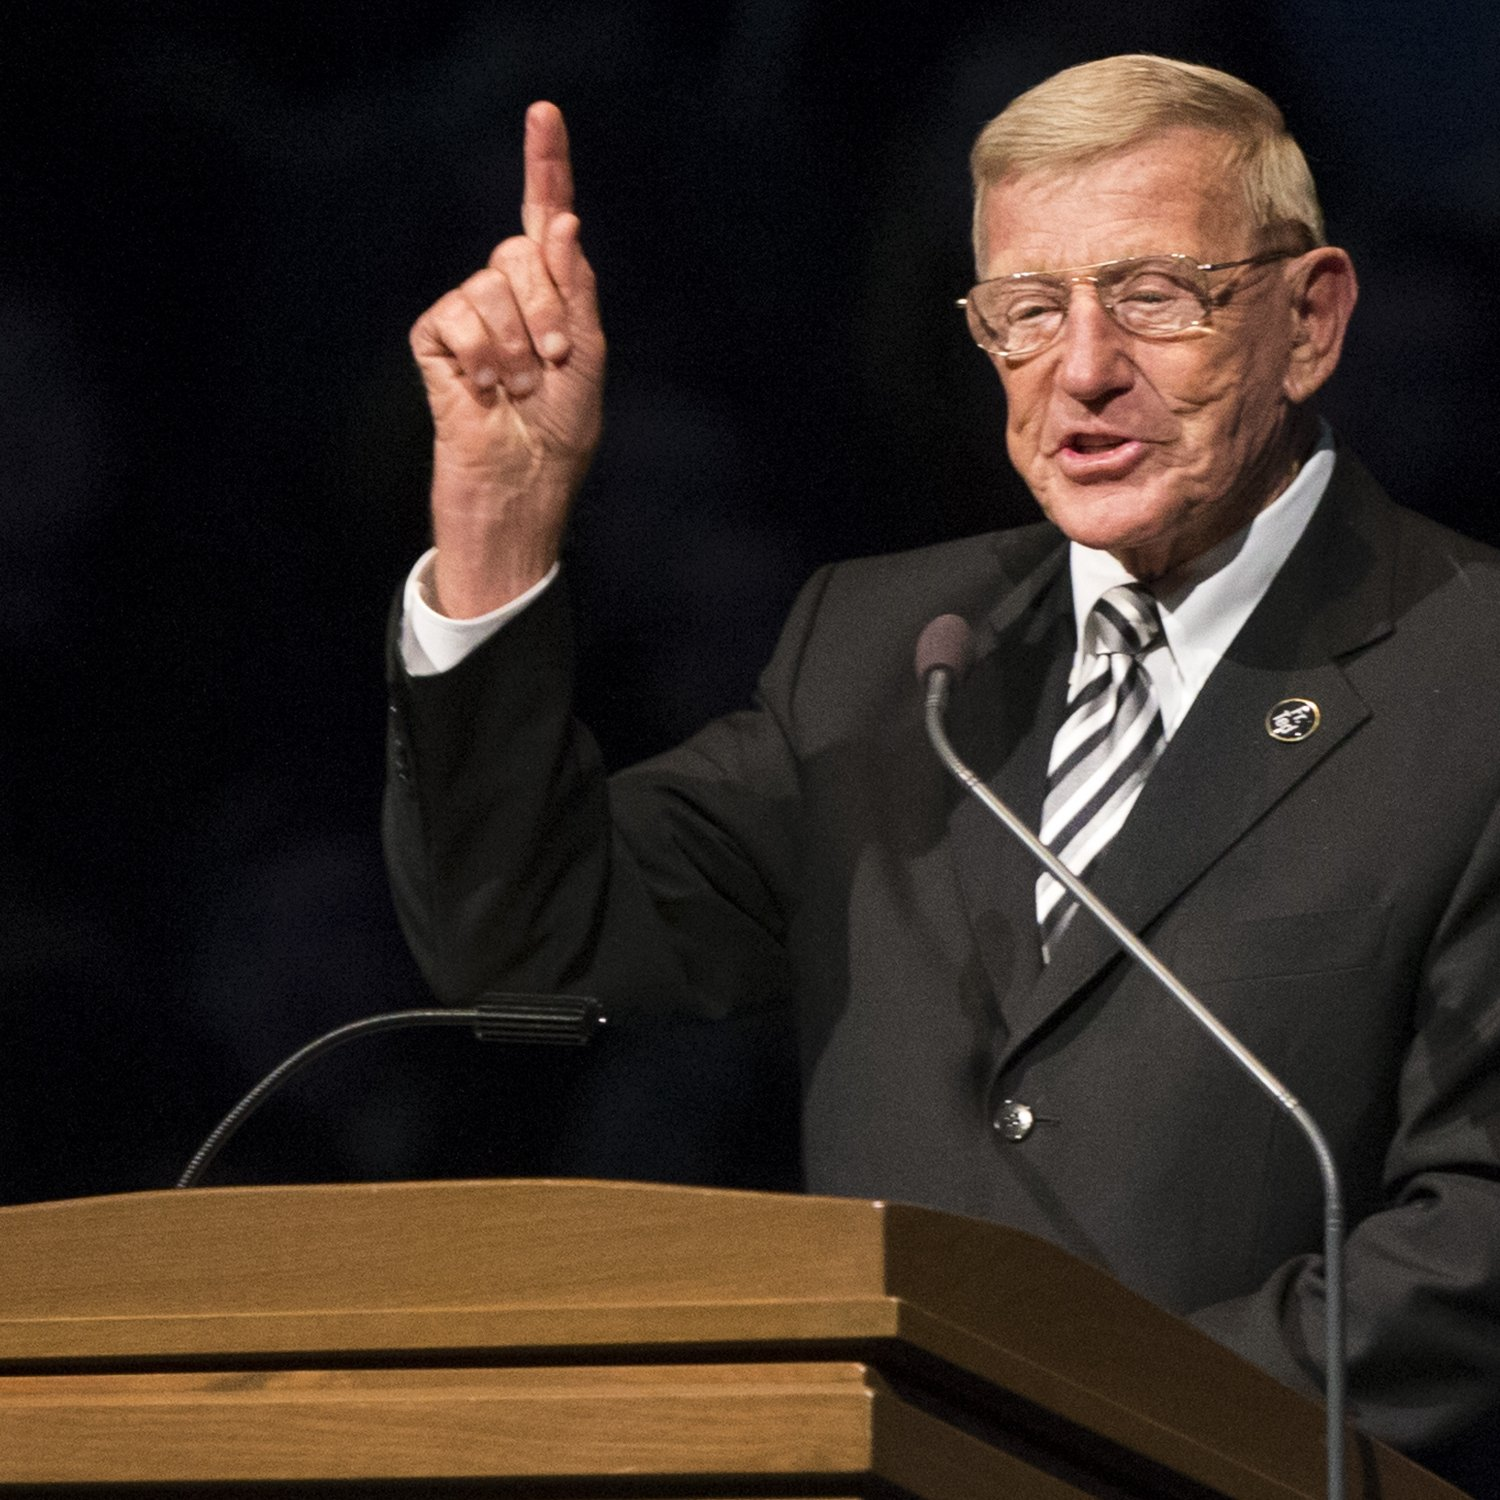 lou holtz endorses donald trump for president in twitter post bleacher report. Black Bedroom Furniture Sets. Home Design Ideas